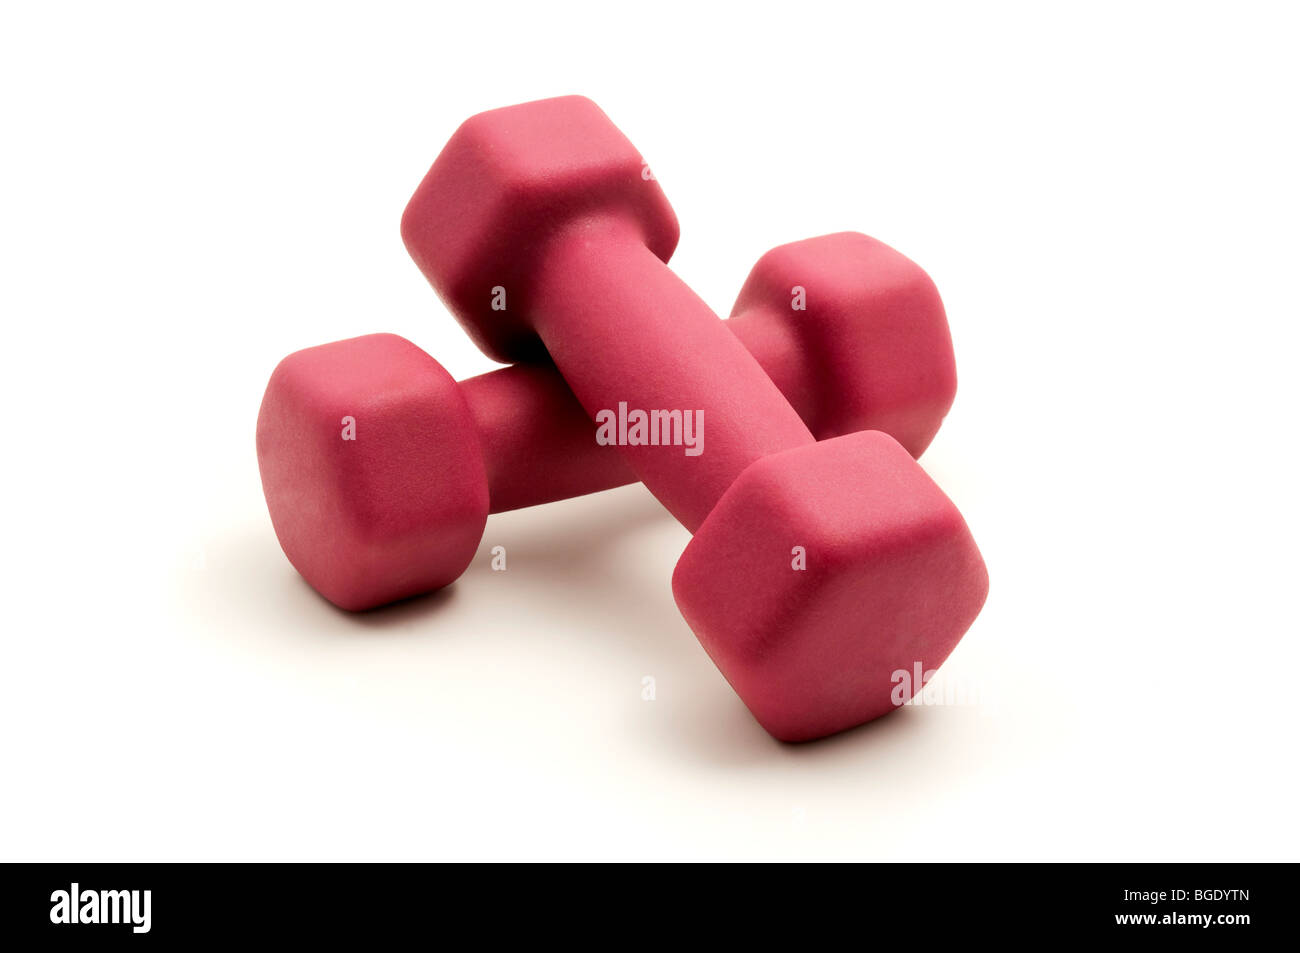 Pink fixed-weight dumbbells on a white background - Stock Image